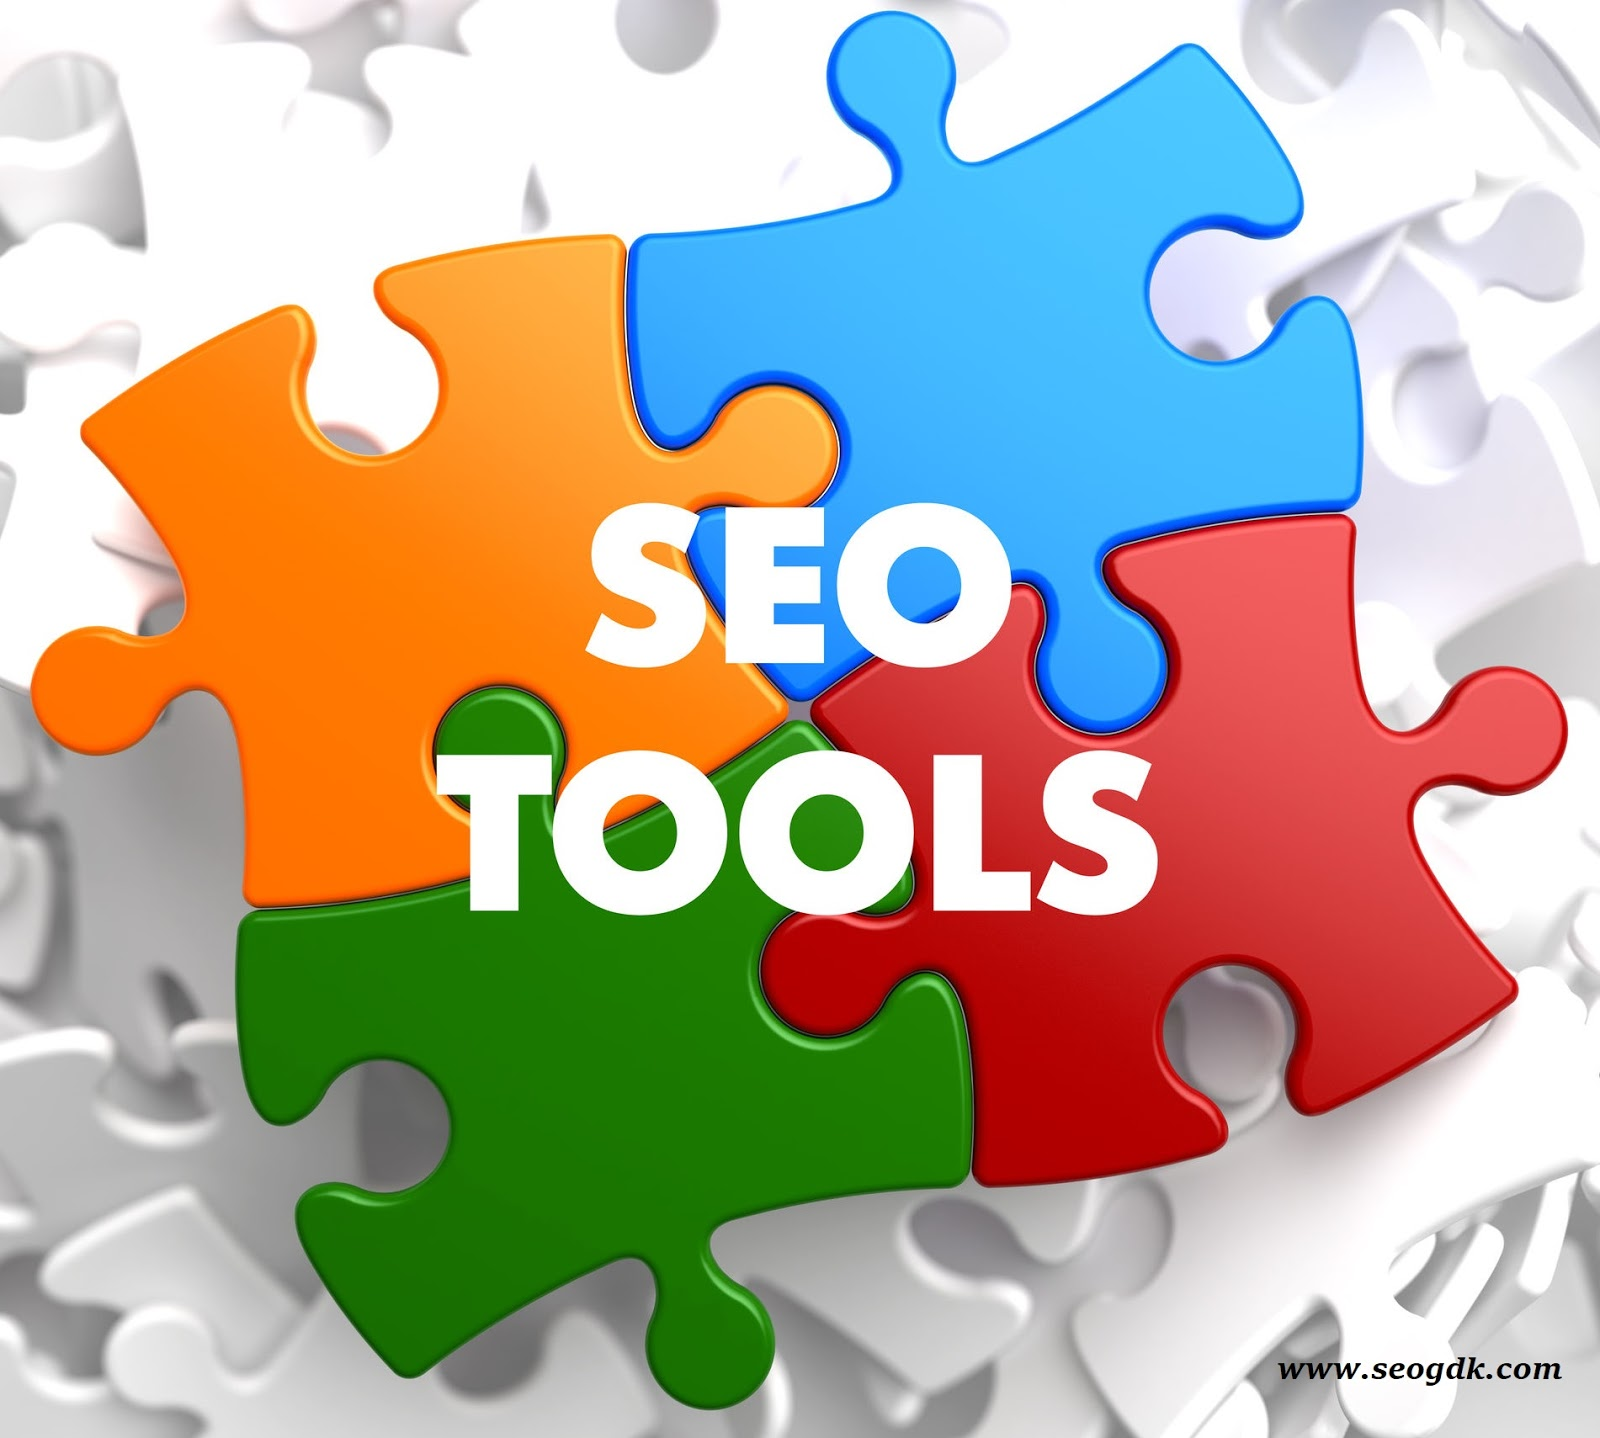 Get The Most From Your Seo Efforts